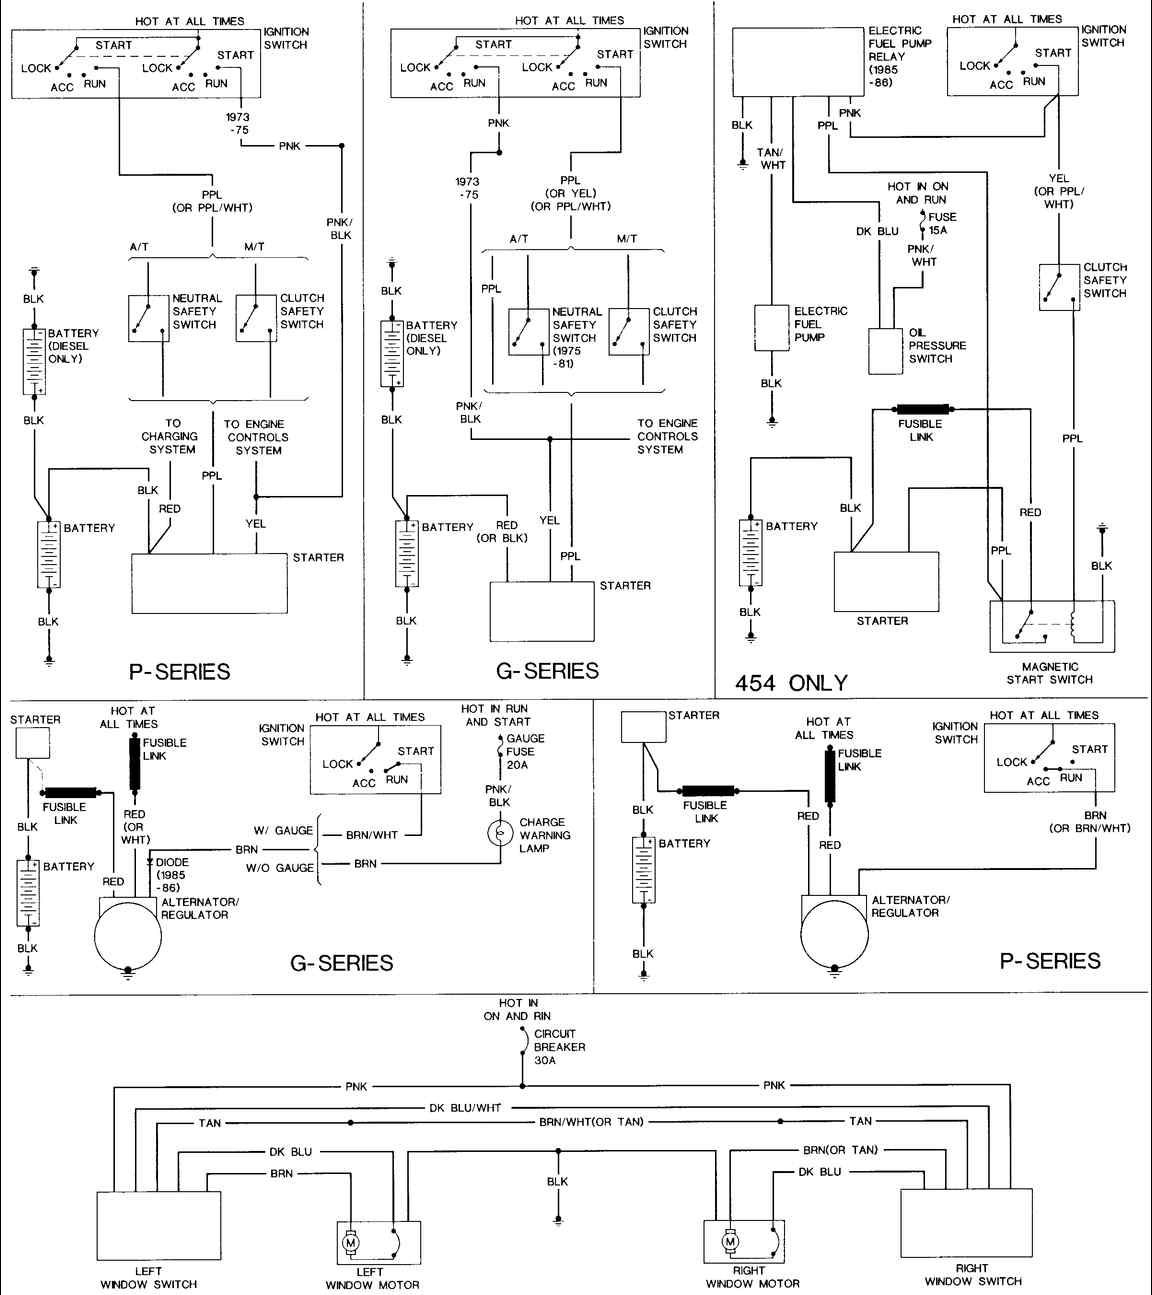 85 Chevy Truck Wiring Diagram Vanthe Steering Column. 85 Chevy Truck Wiring Diagram Vanthe Steering Column And Started It By Pushingrod. Chevrolet. 1973 Chevrolet K10 Wiring At Scoala.co